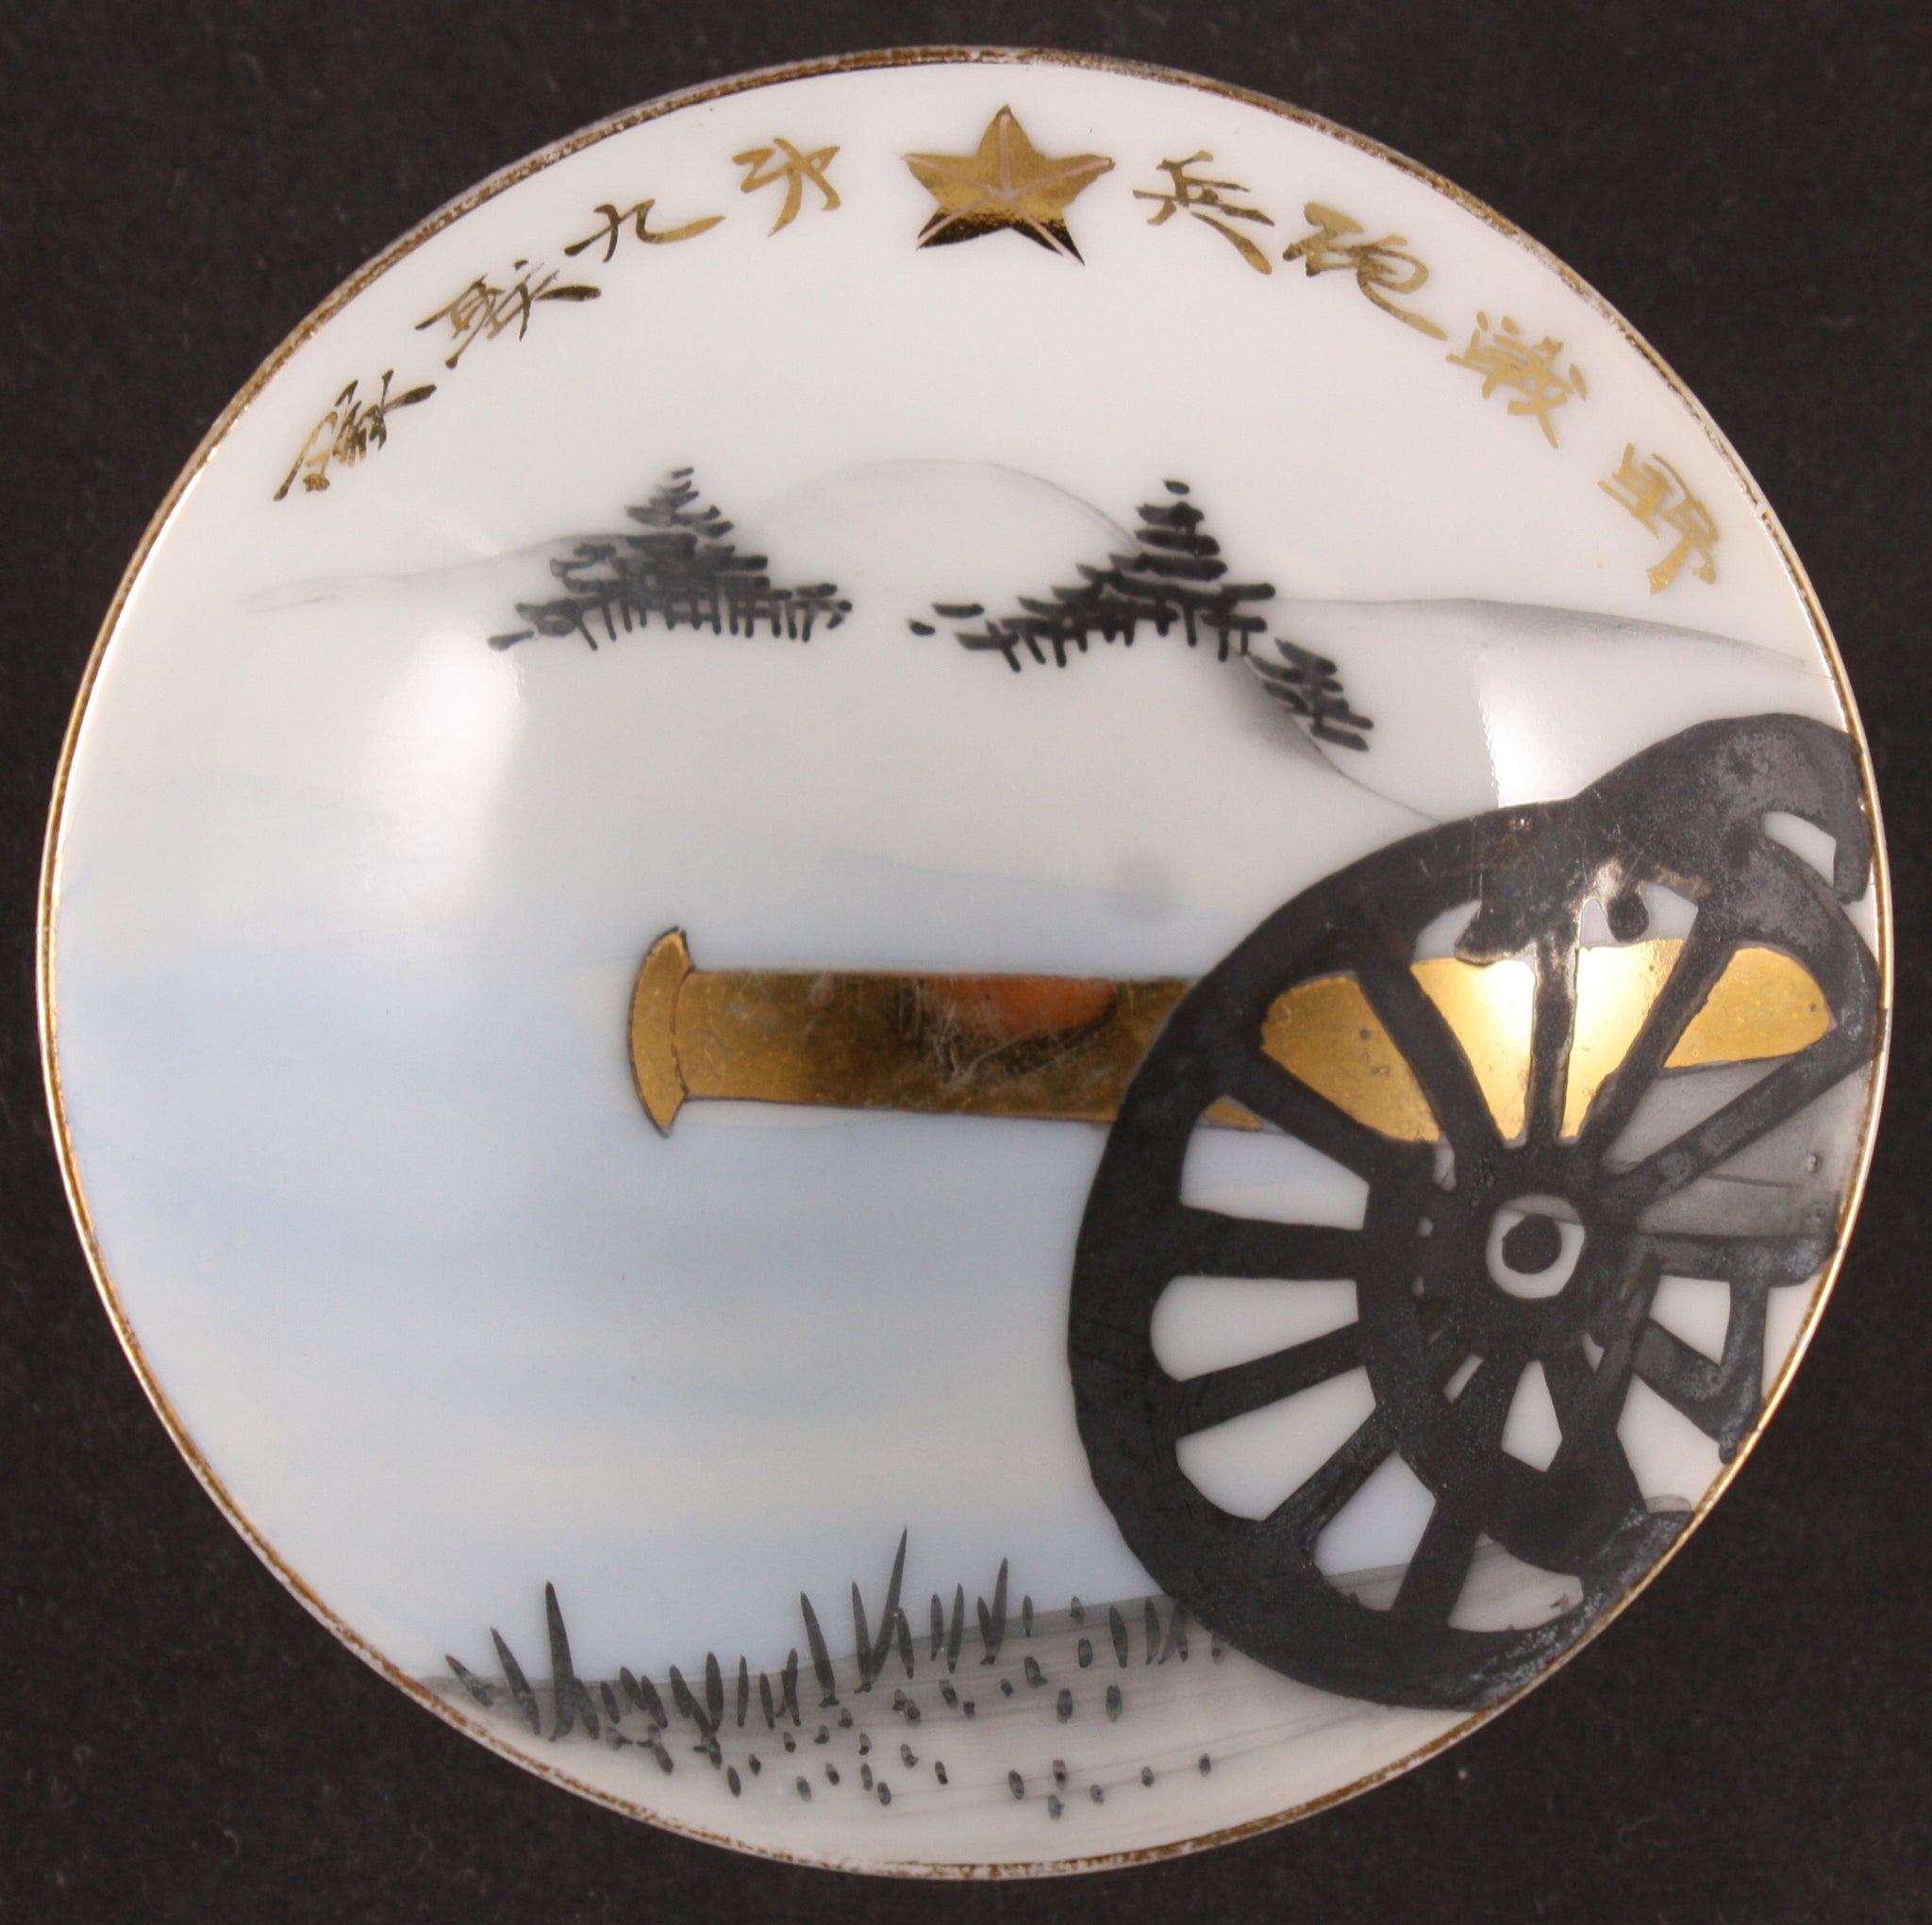 Antique Japanese Military Landscape Artillery Corporal Army Sake Cup